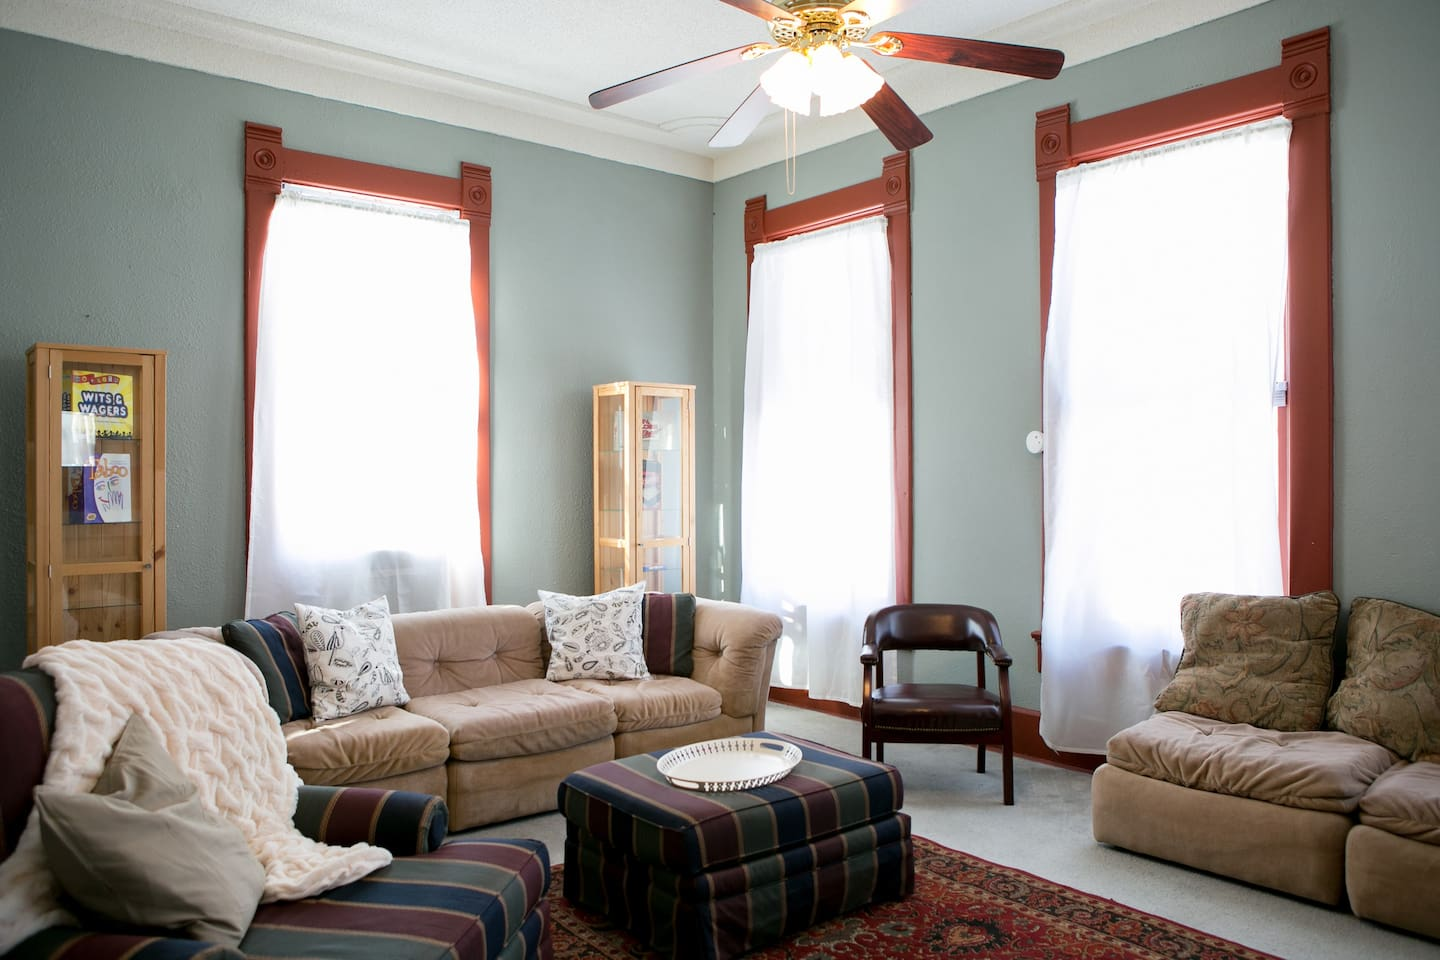 Sunlight streams into the windows in the spacious living room. Ample seating is provided for you and your guests!